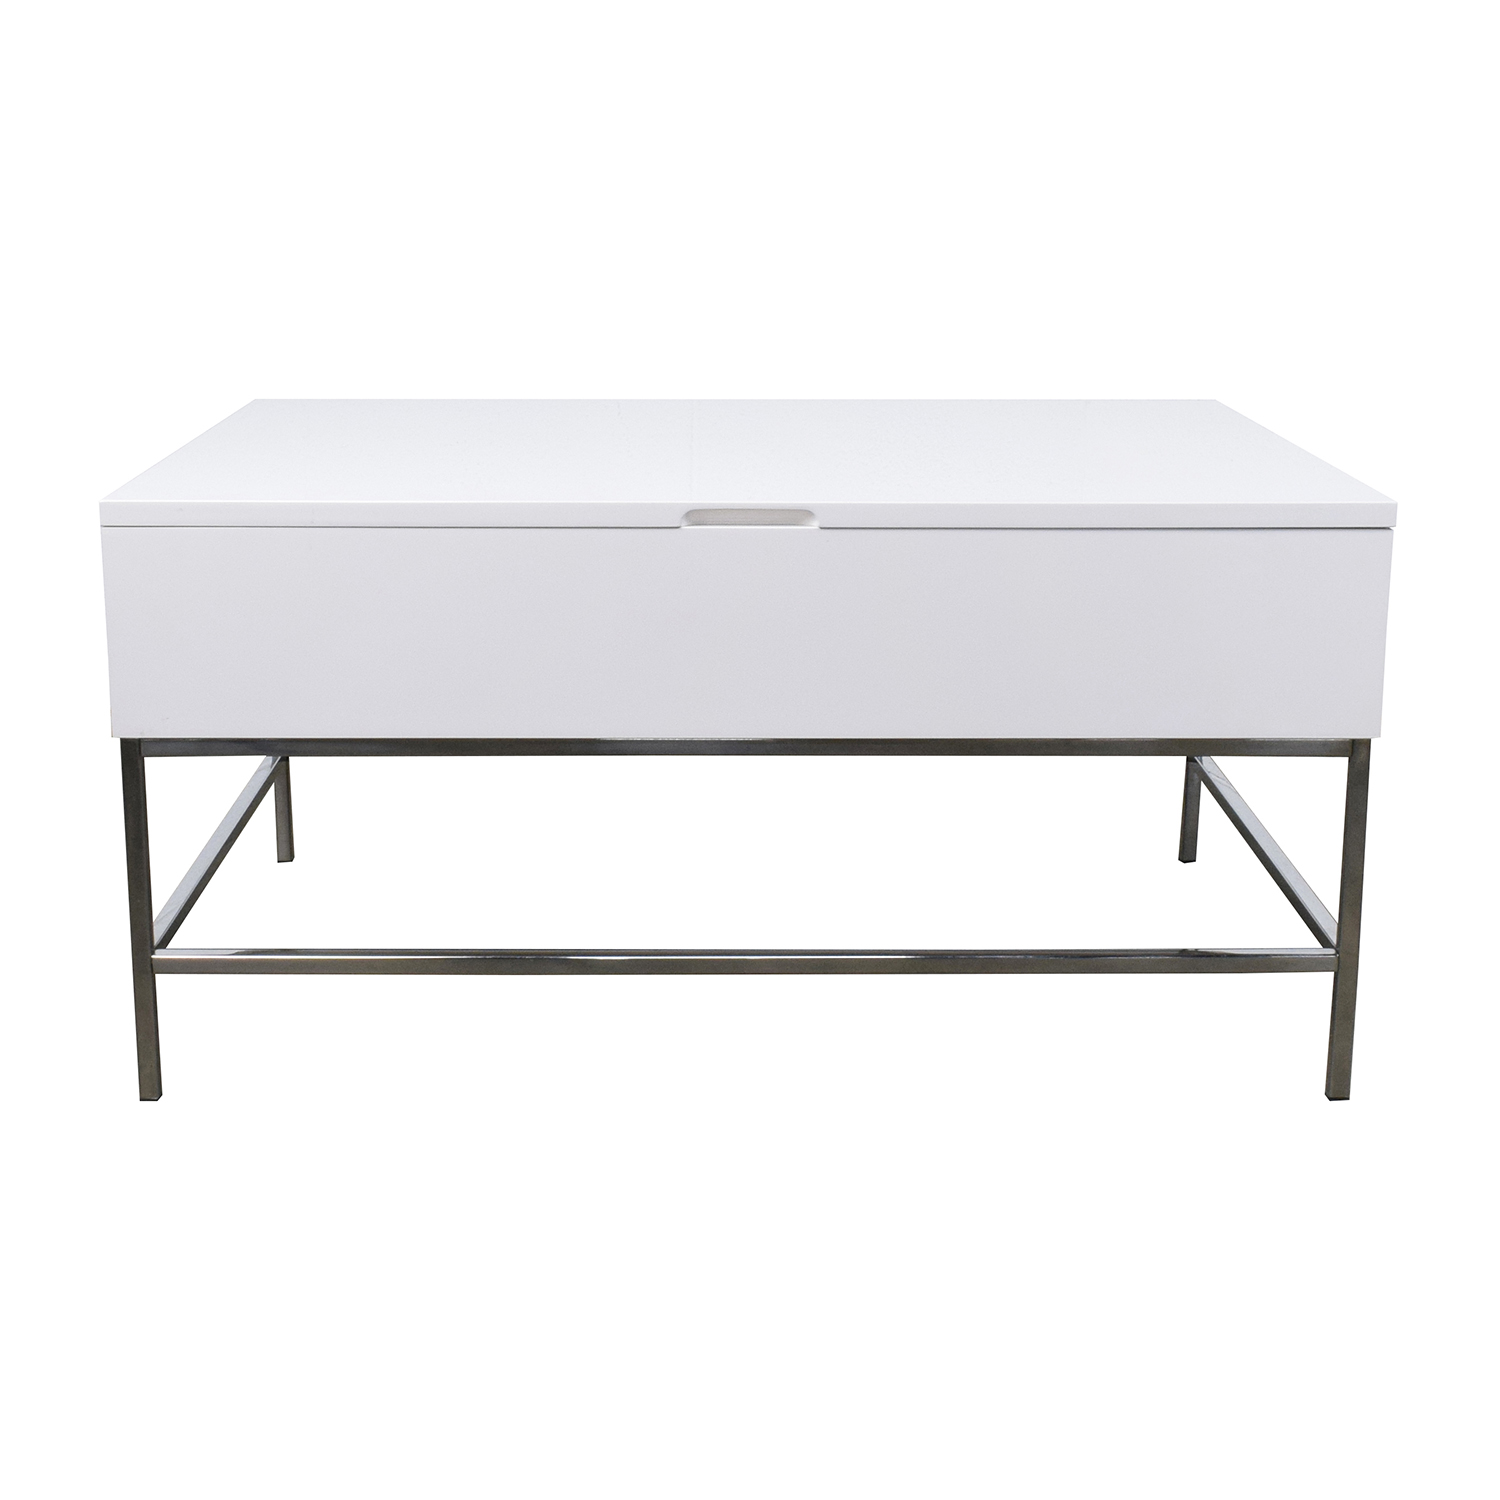 34 OFF West Elm Storage Table West Elm White Lacquer Wood Coffee